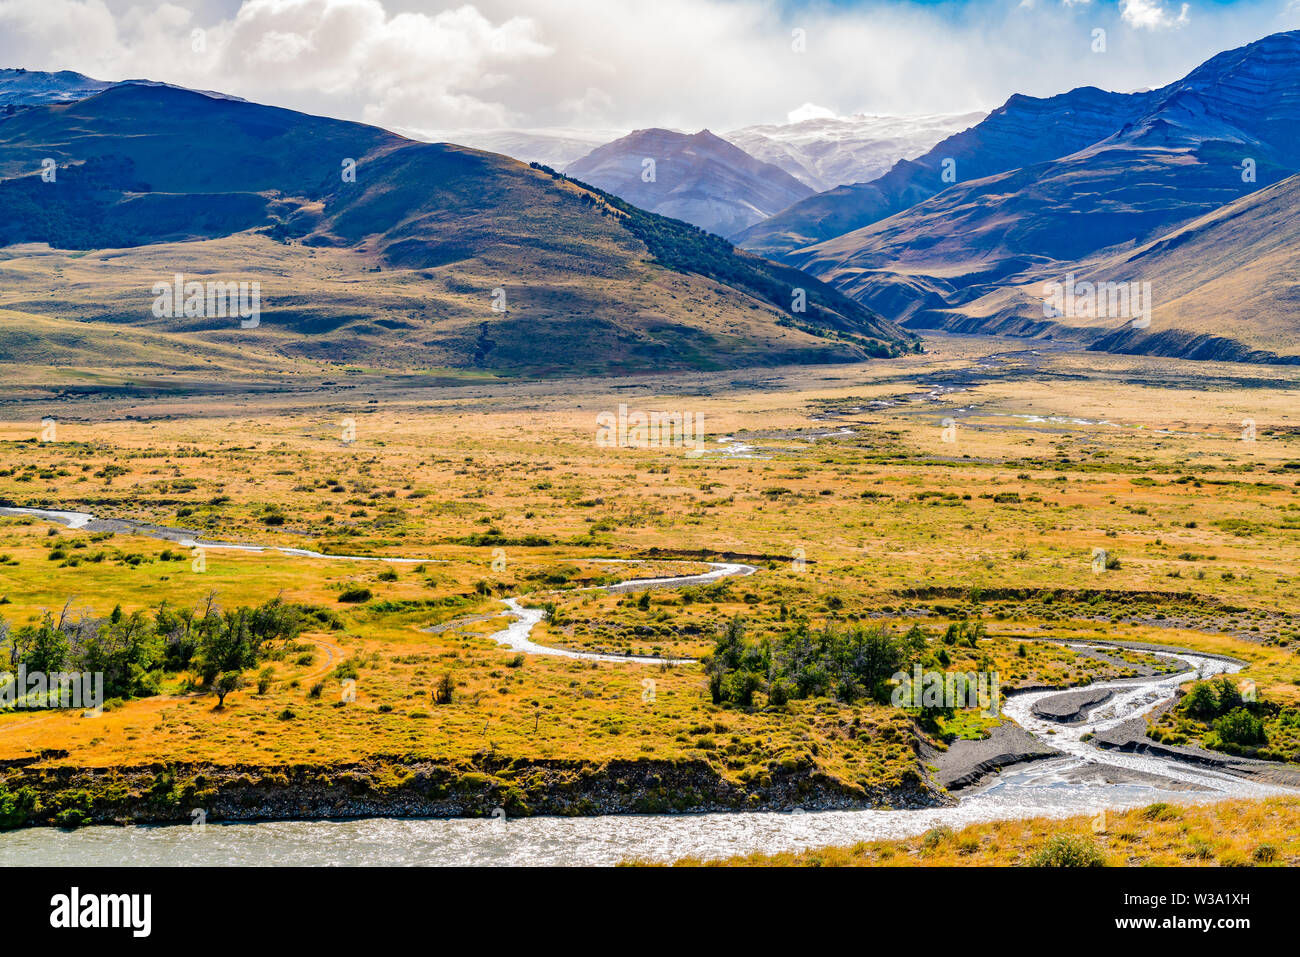 Natural landscape of Los Glaciares National Park with high mountain and river at El Chalten, Argentina - Stock Image